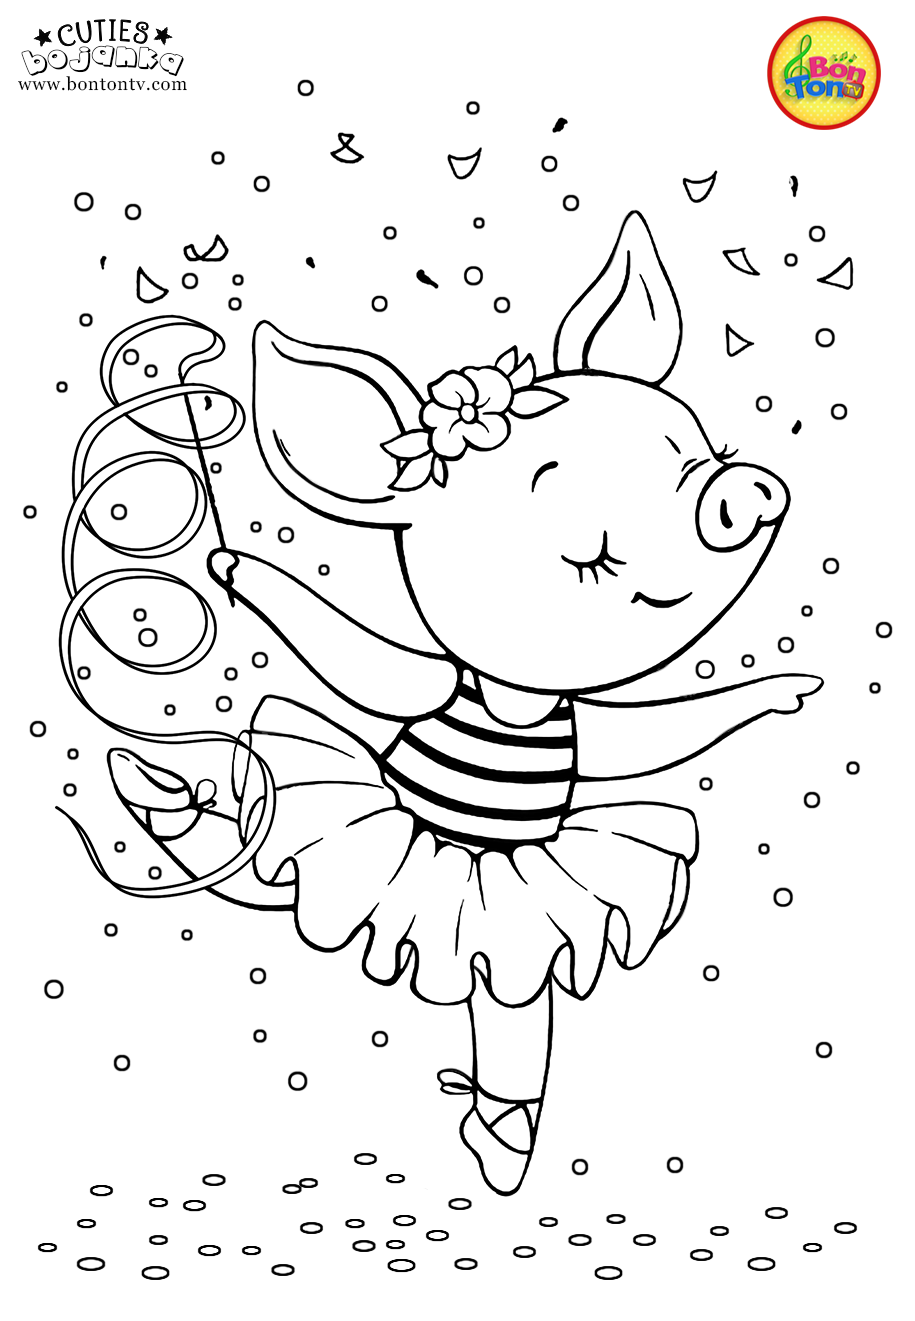 Cuties Coloring Pages For Kids Free Preschool Printables Cute